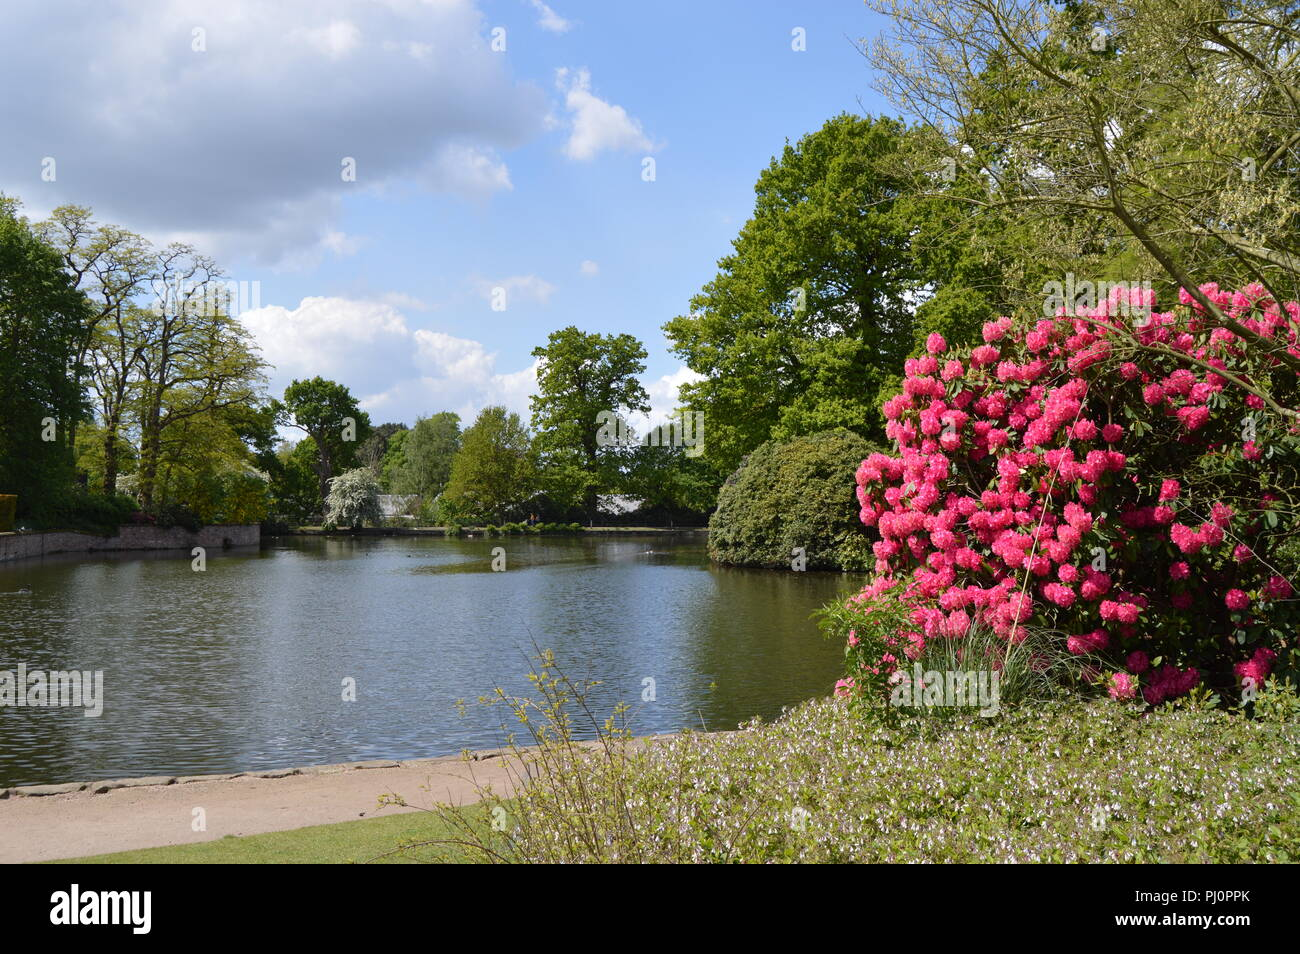 Landscape at Dunham Massey Altrincham Rhododendrons and Lake - Stock Image